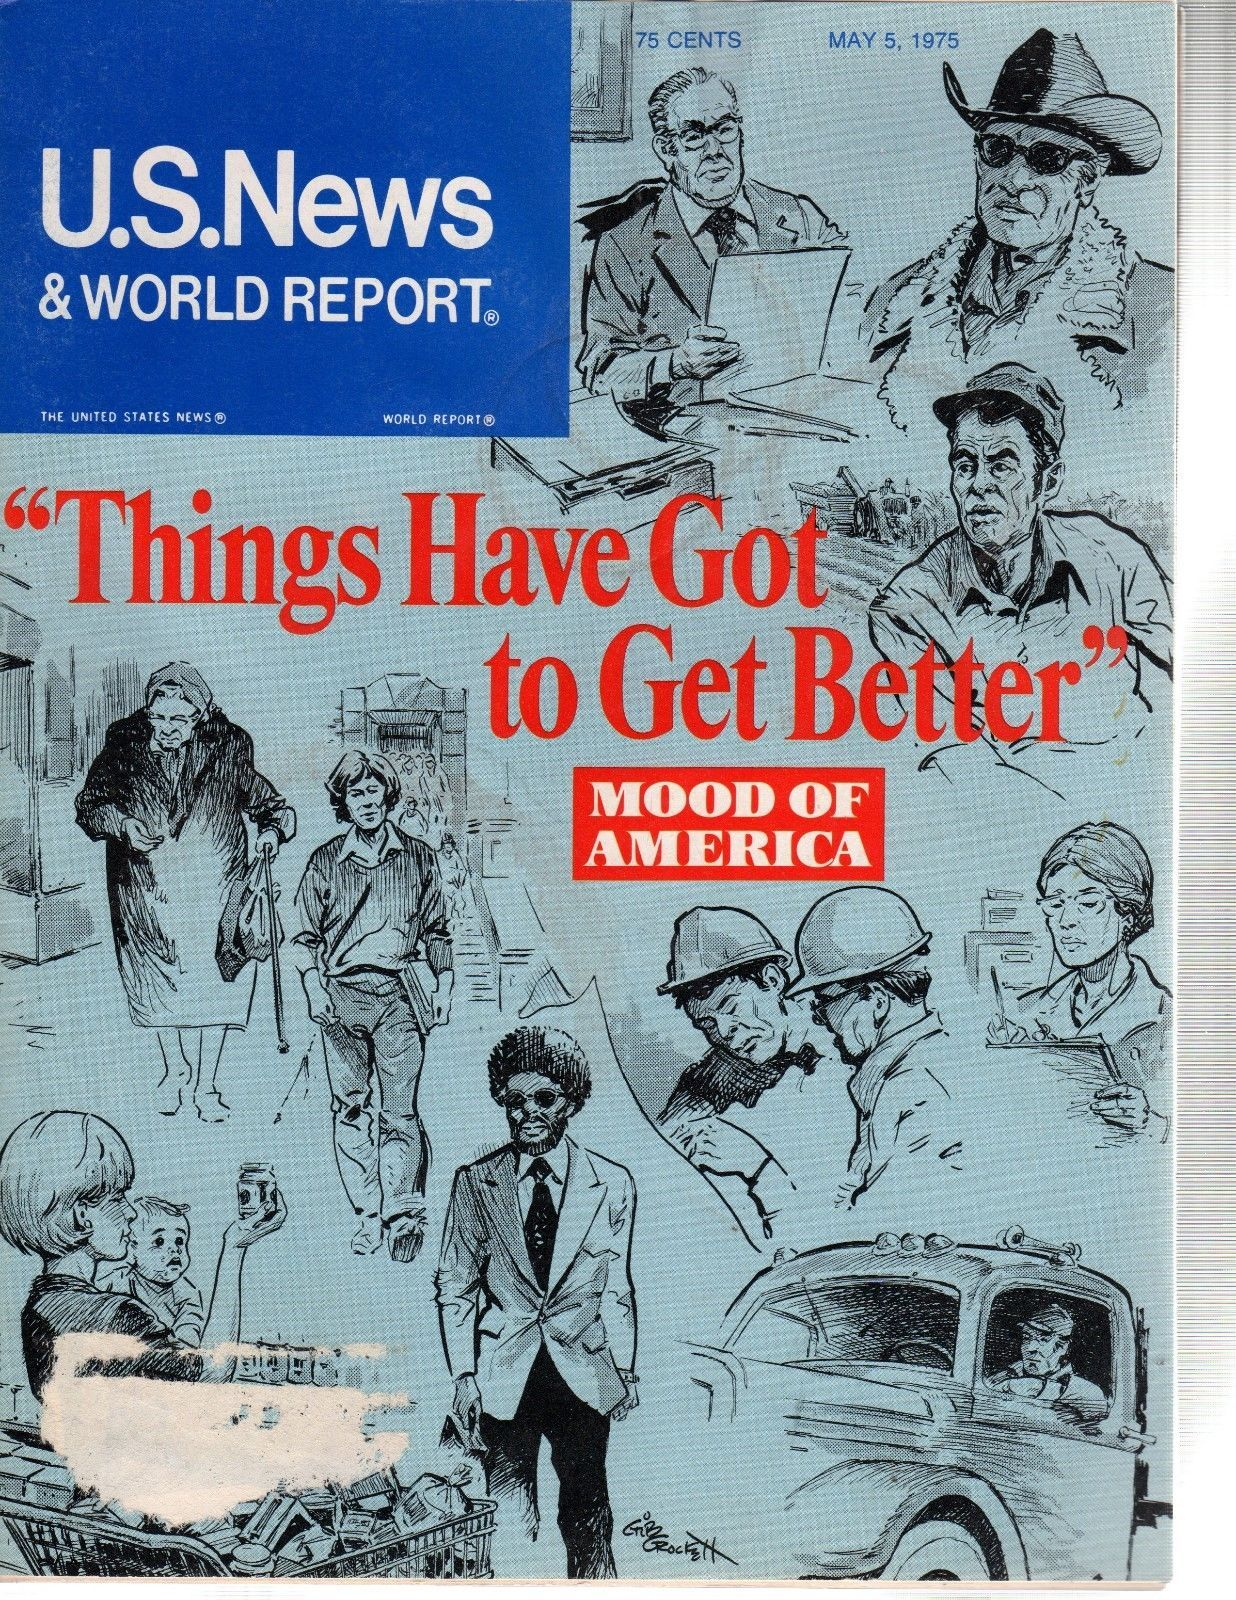 Primary image for U.S. News & World Report May 5, 1975 Things Have Got to Get Better